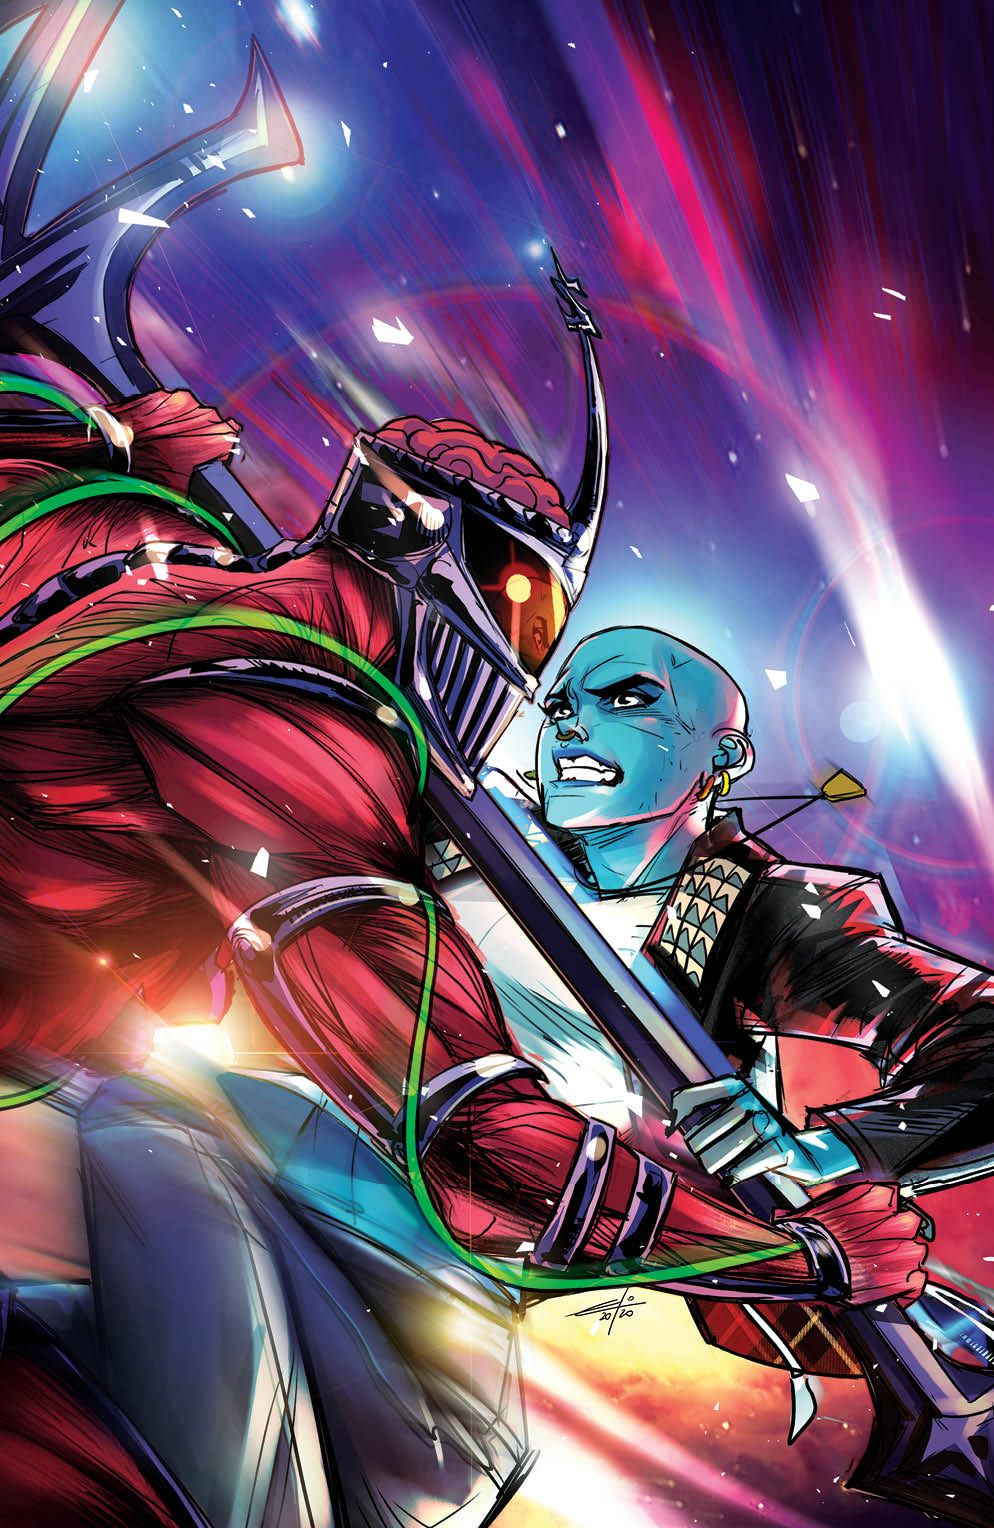 Mighty_Morphin_008_Cover_E_Variant-1 ComicList: BOOM! Studios New Releases for 06/16/2021